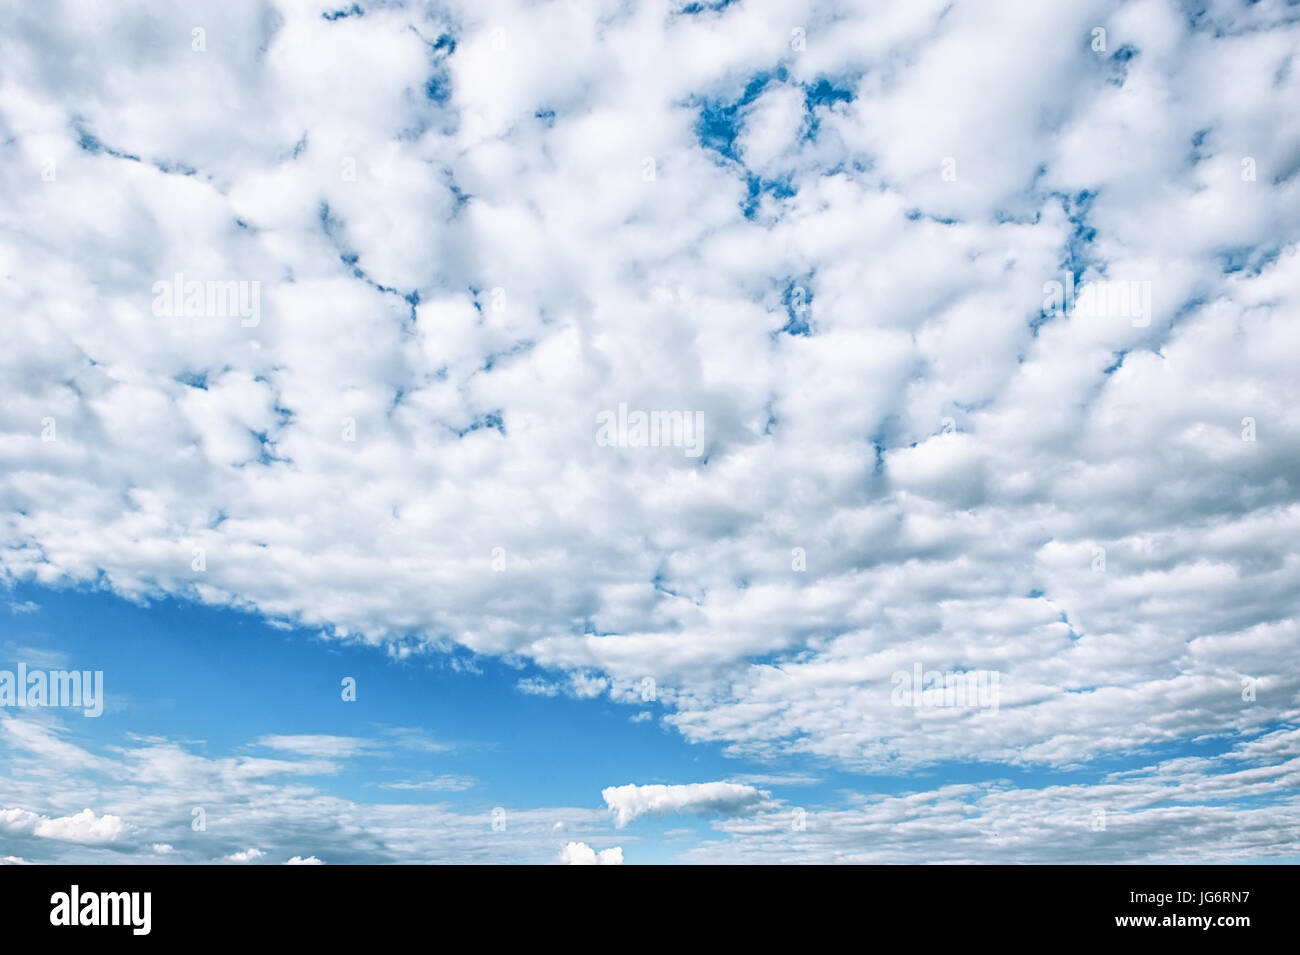 White fluffy clouds background. The horizontal frame. - Stock Image